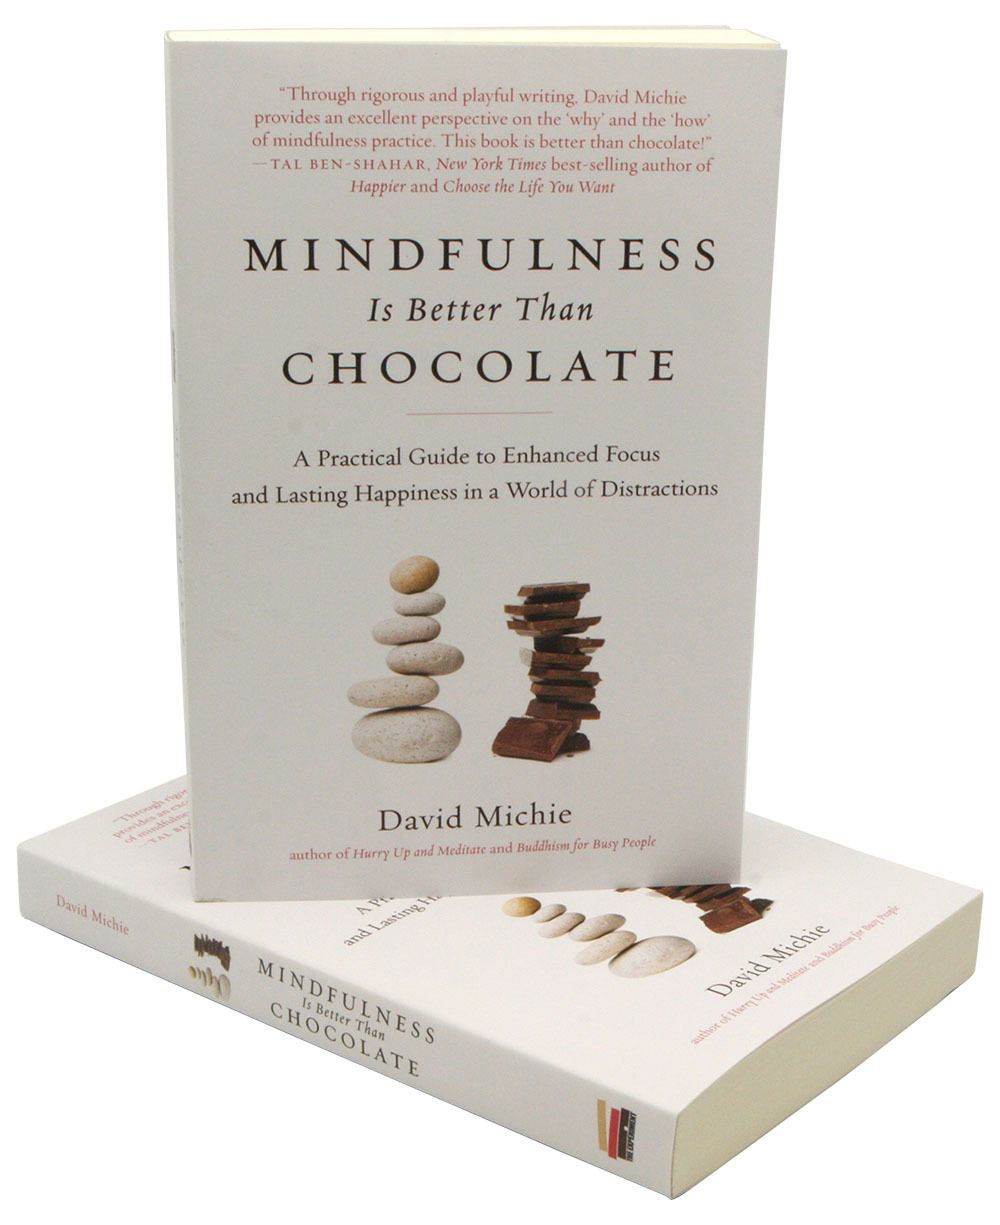 mindfulness is better than chocolate a practical guide to enhanced focus and lasting happiness in a world of distractions